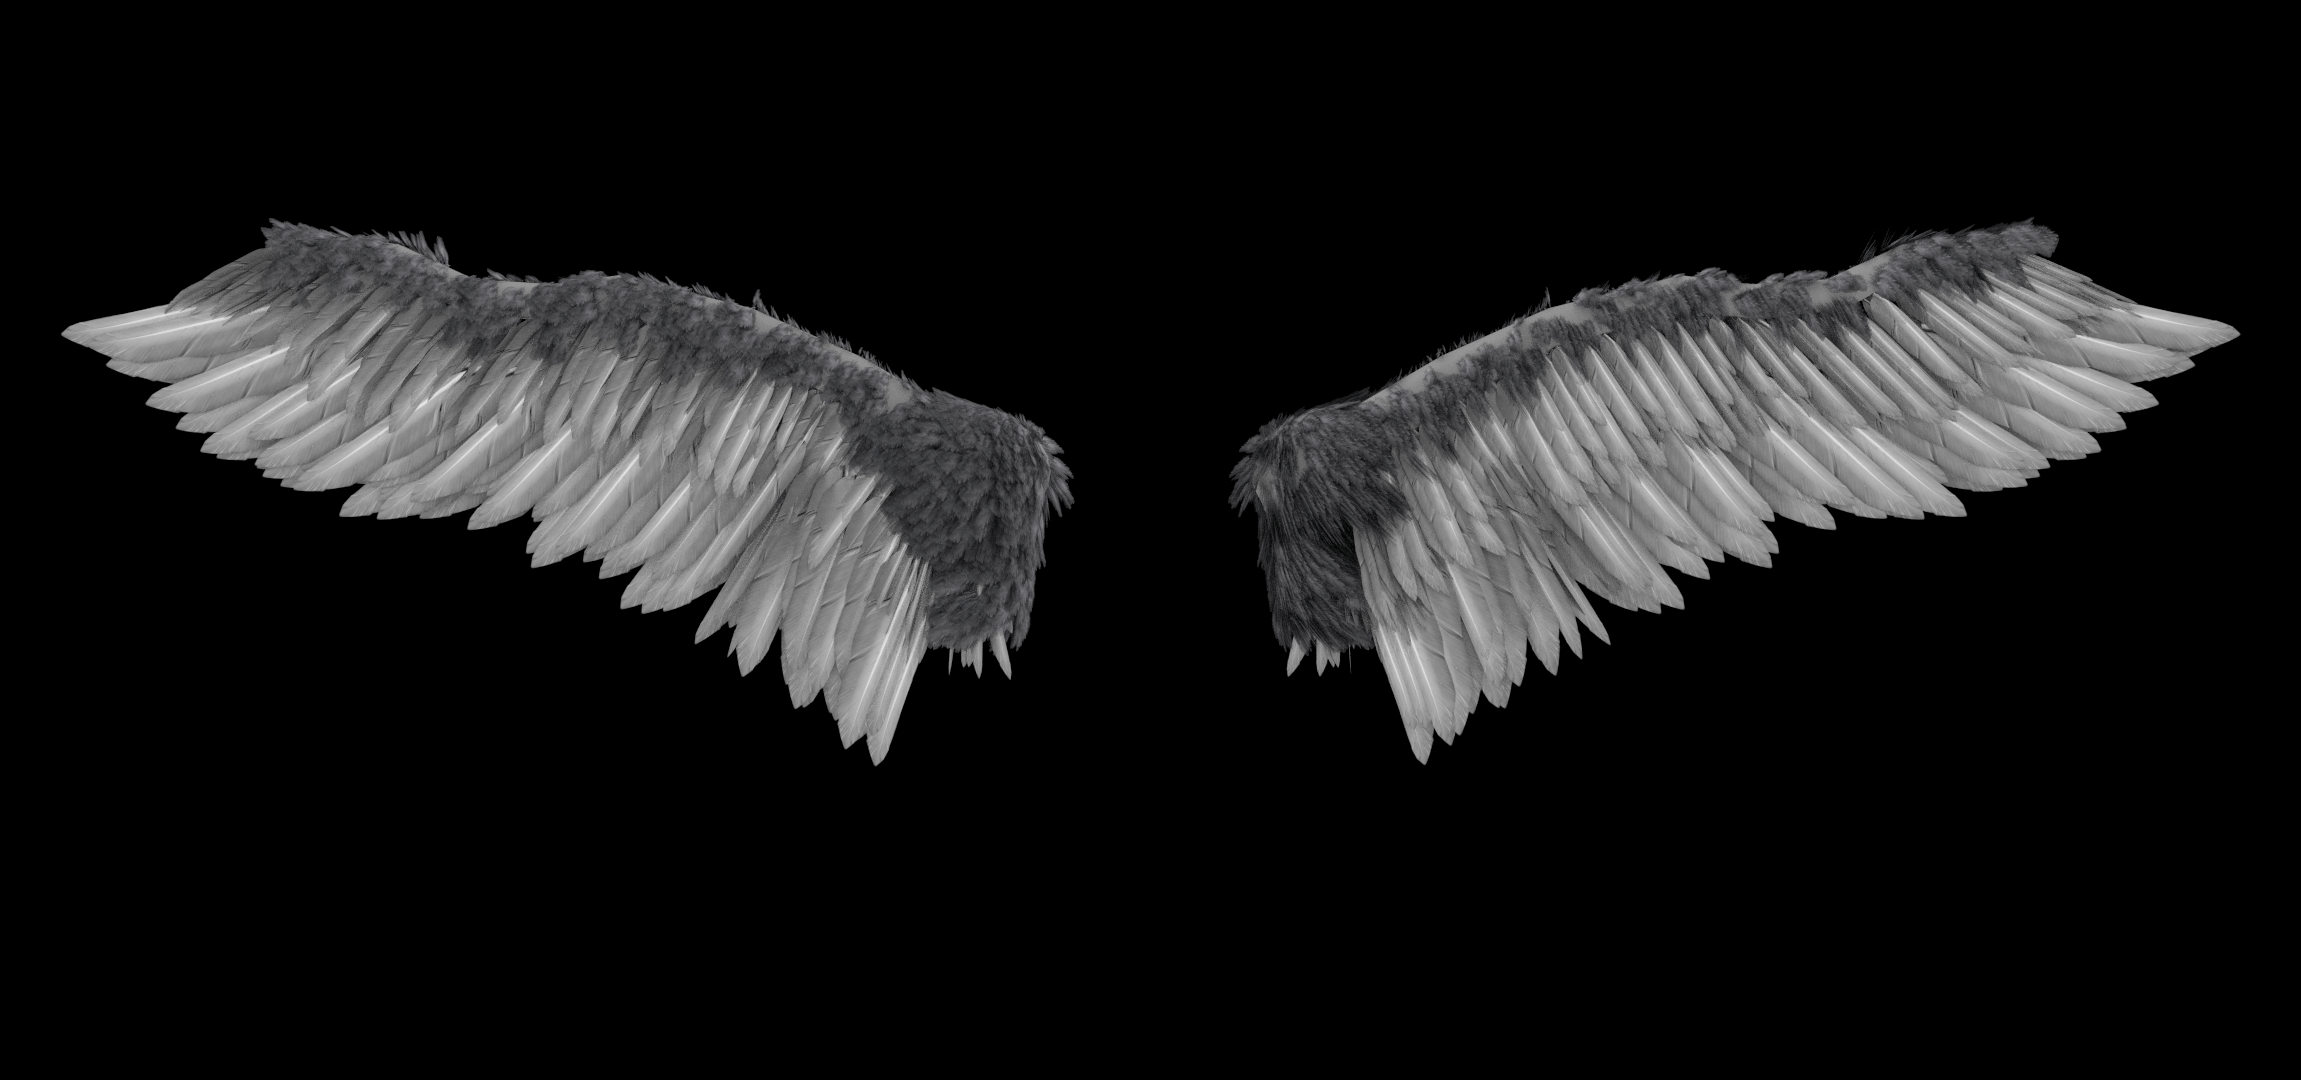 Falling Feathers Wallpaper Angel S Wings 5 19 13 Flickr Photo Sharing